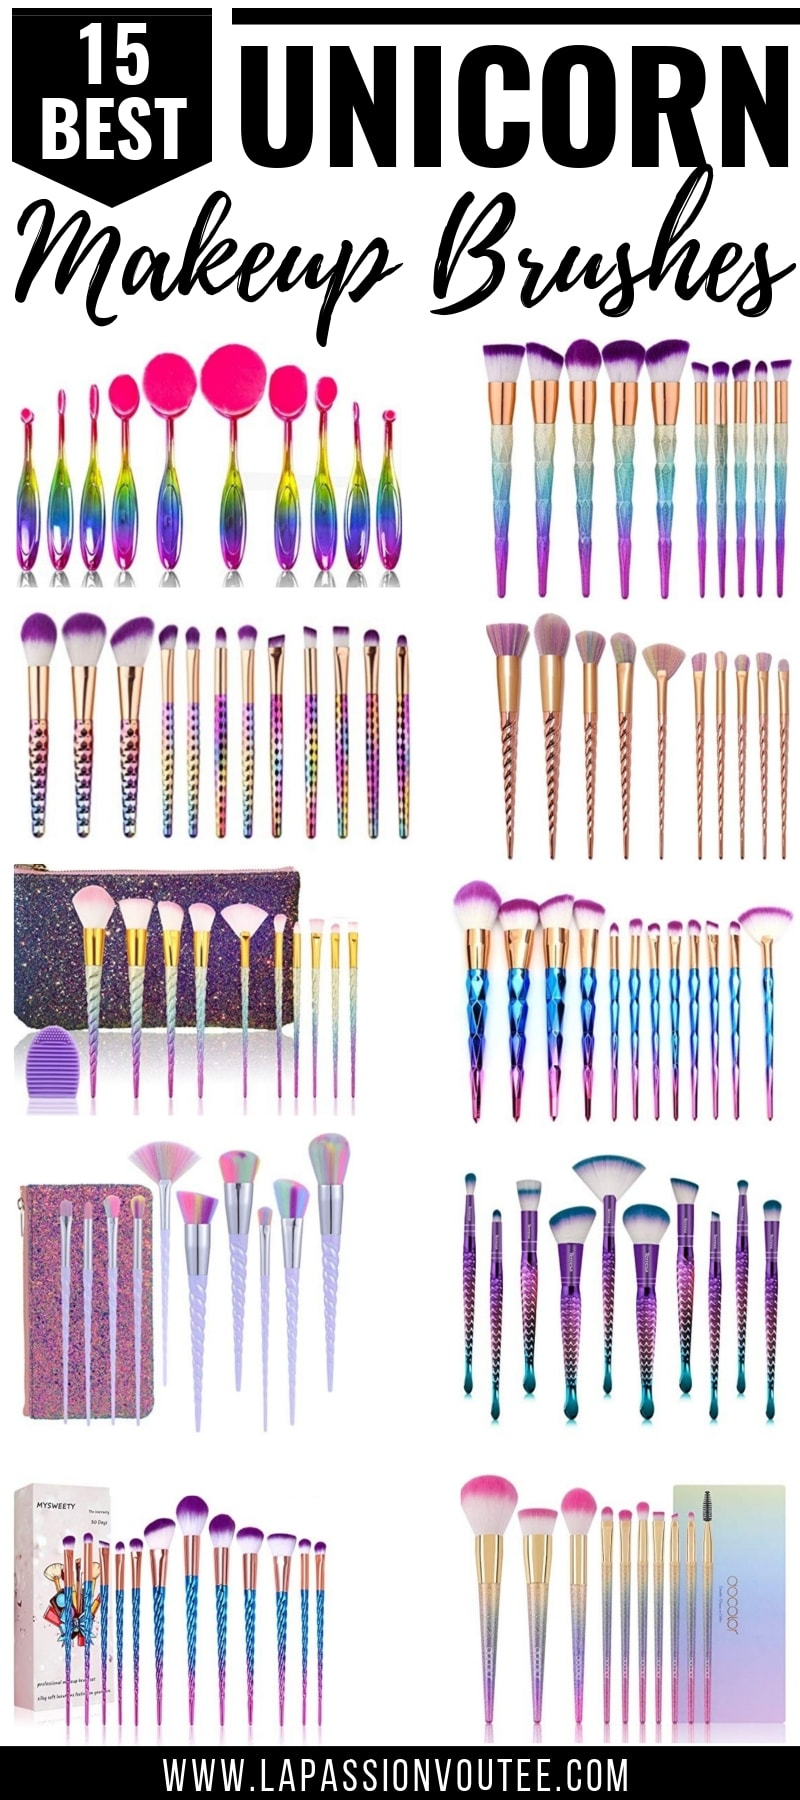 OMG, these are the absolute BEST unicorn makeup brushes on Amazon! Don't waste your money on expensive makeup brushes when you can get the same results with these top-rated unicorn brush sets! You have to check out this post now! makeup brushes guide, unicorn brushes, best makeup brushes, makeup brushes 101, makeup brush set